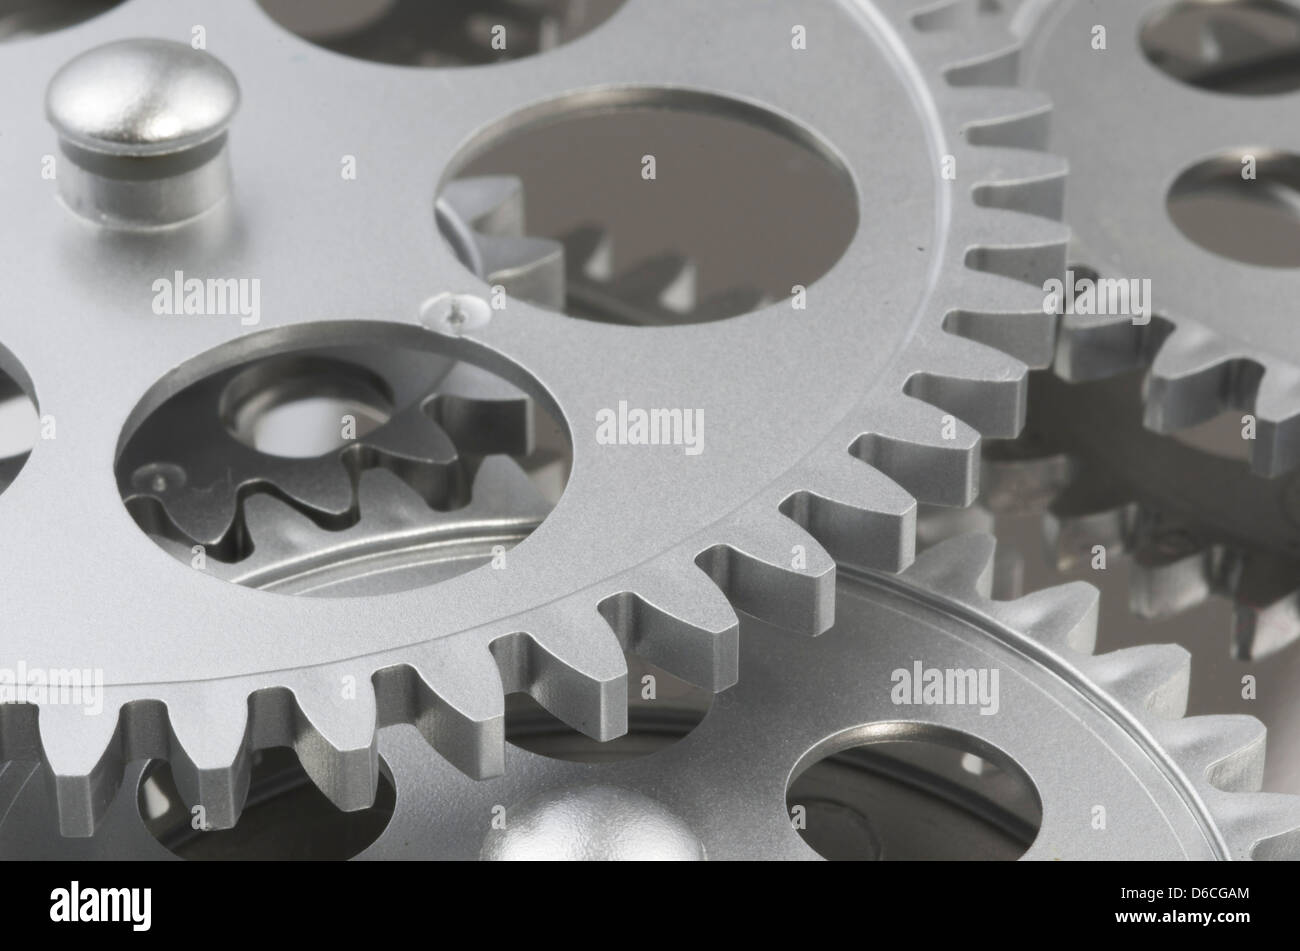 Close up of gray gears layered and interlocked. - Stock Image